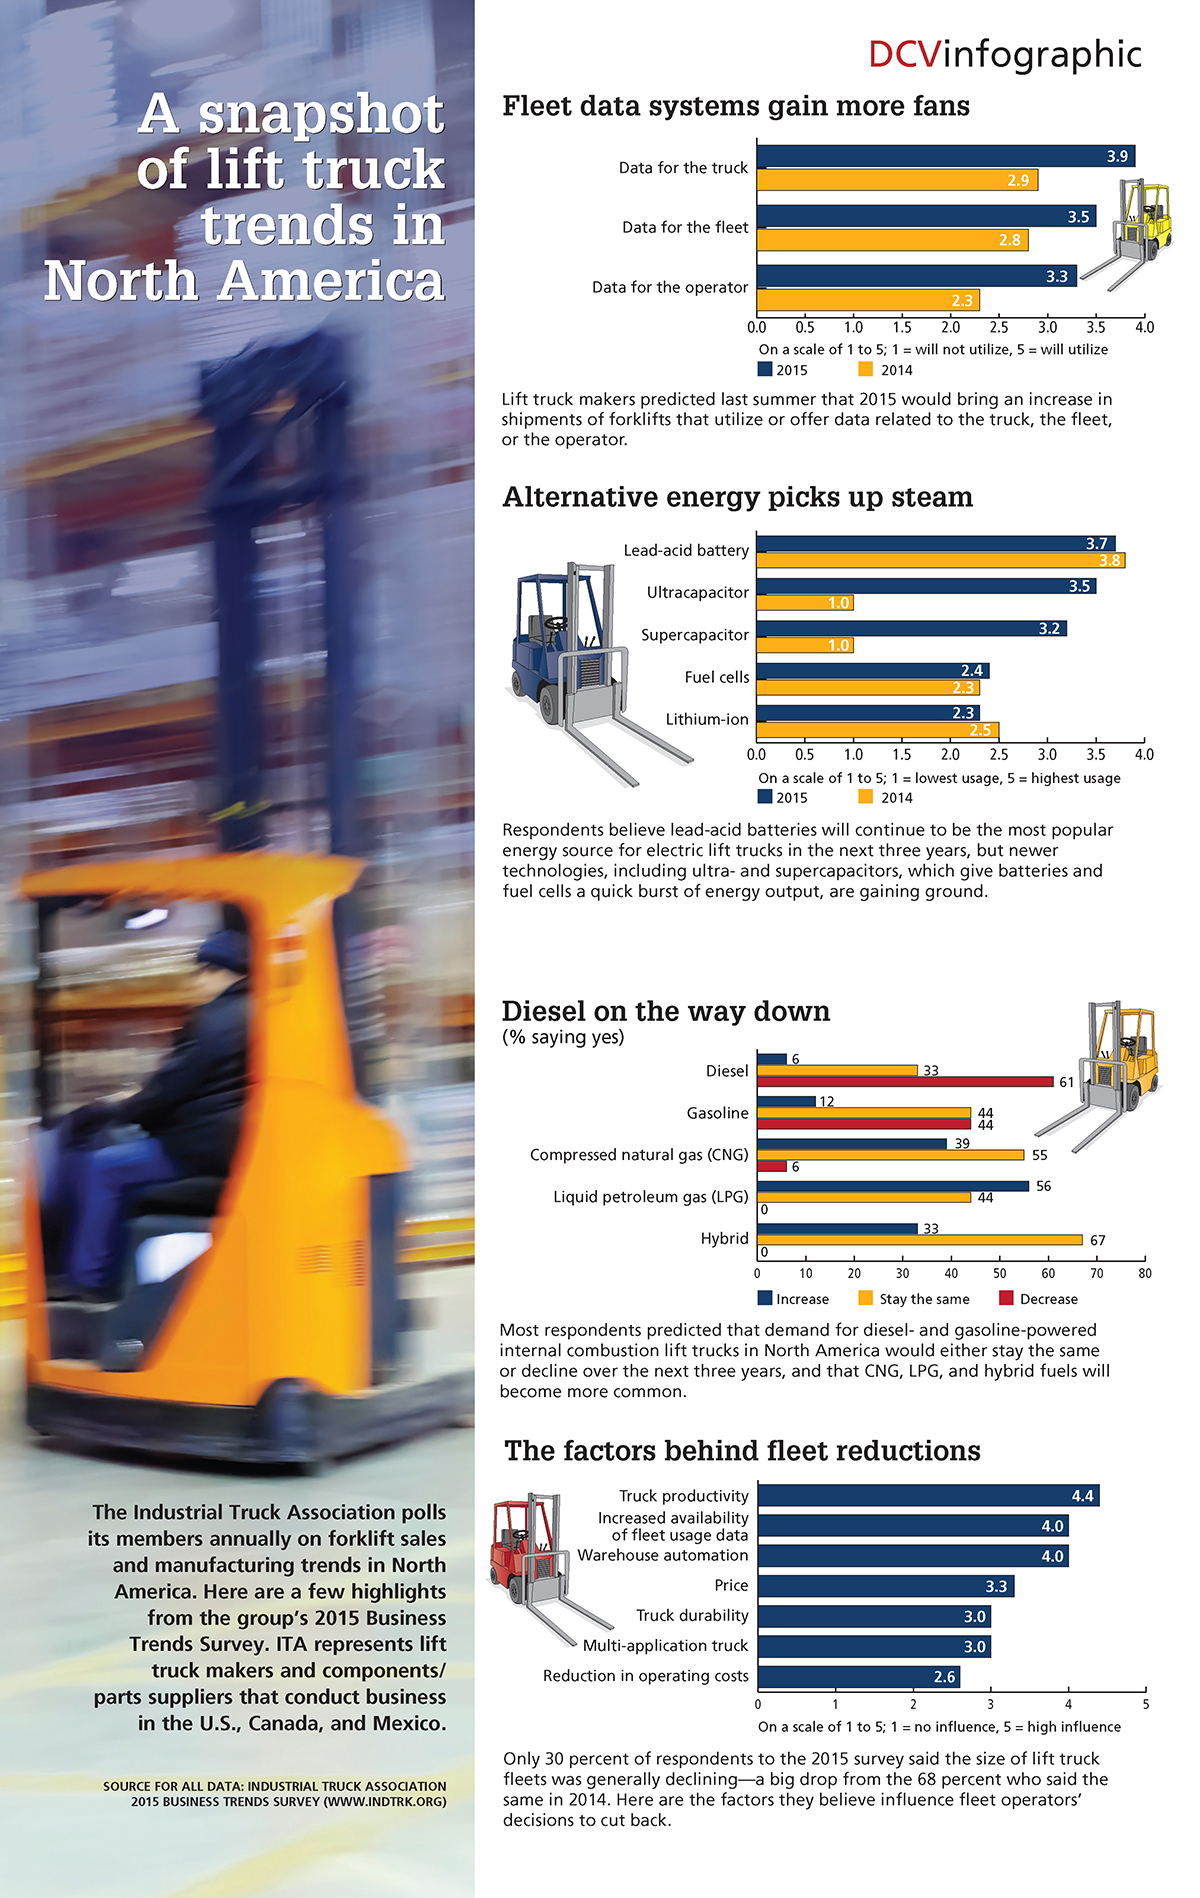 A snapshot of lift truck trends in North America: Here, some predictions about technology, energy sources, and fleet size for industrial trucks.